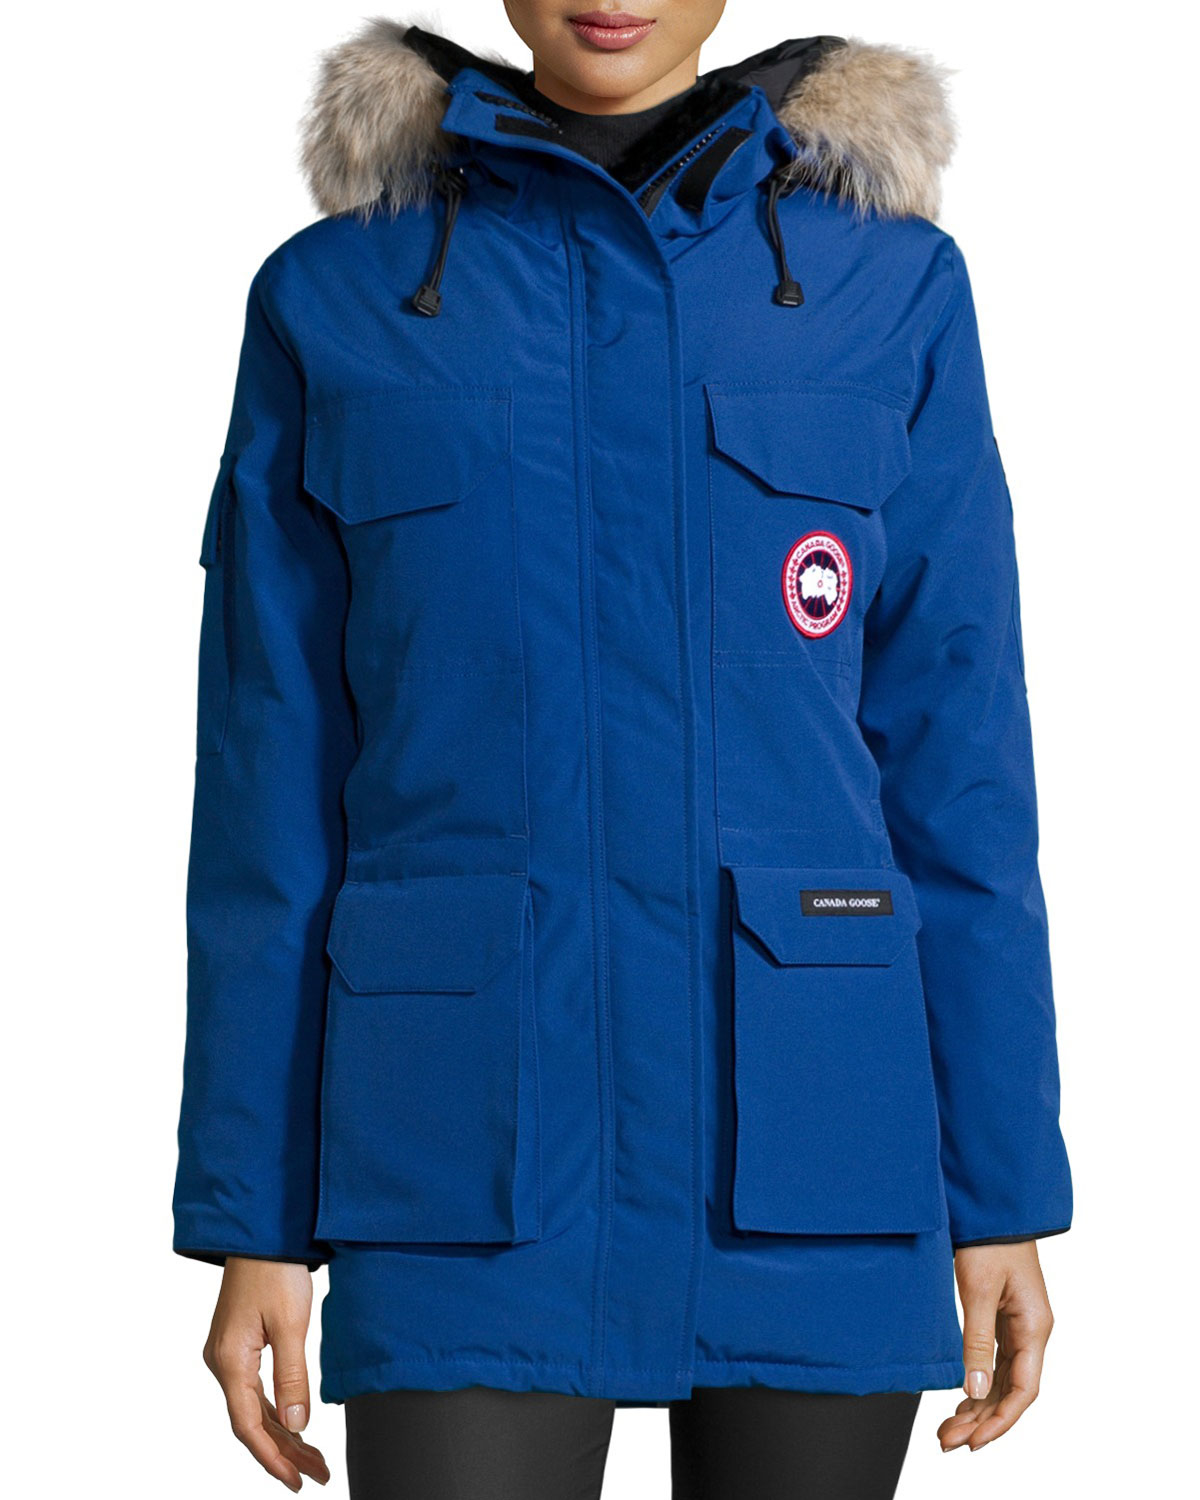 Canada Goose' Women's Chilliwack Bomber Jacket S - Red11